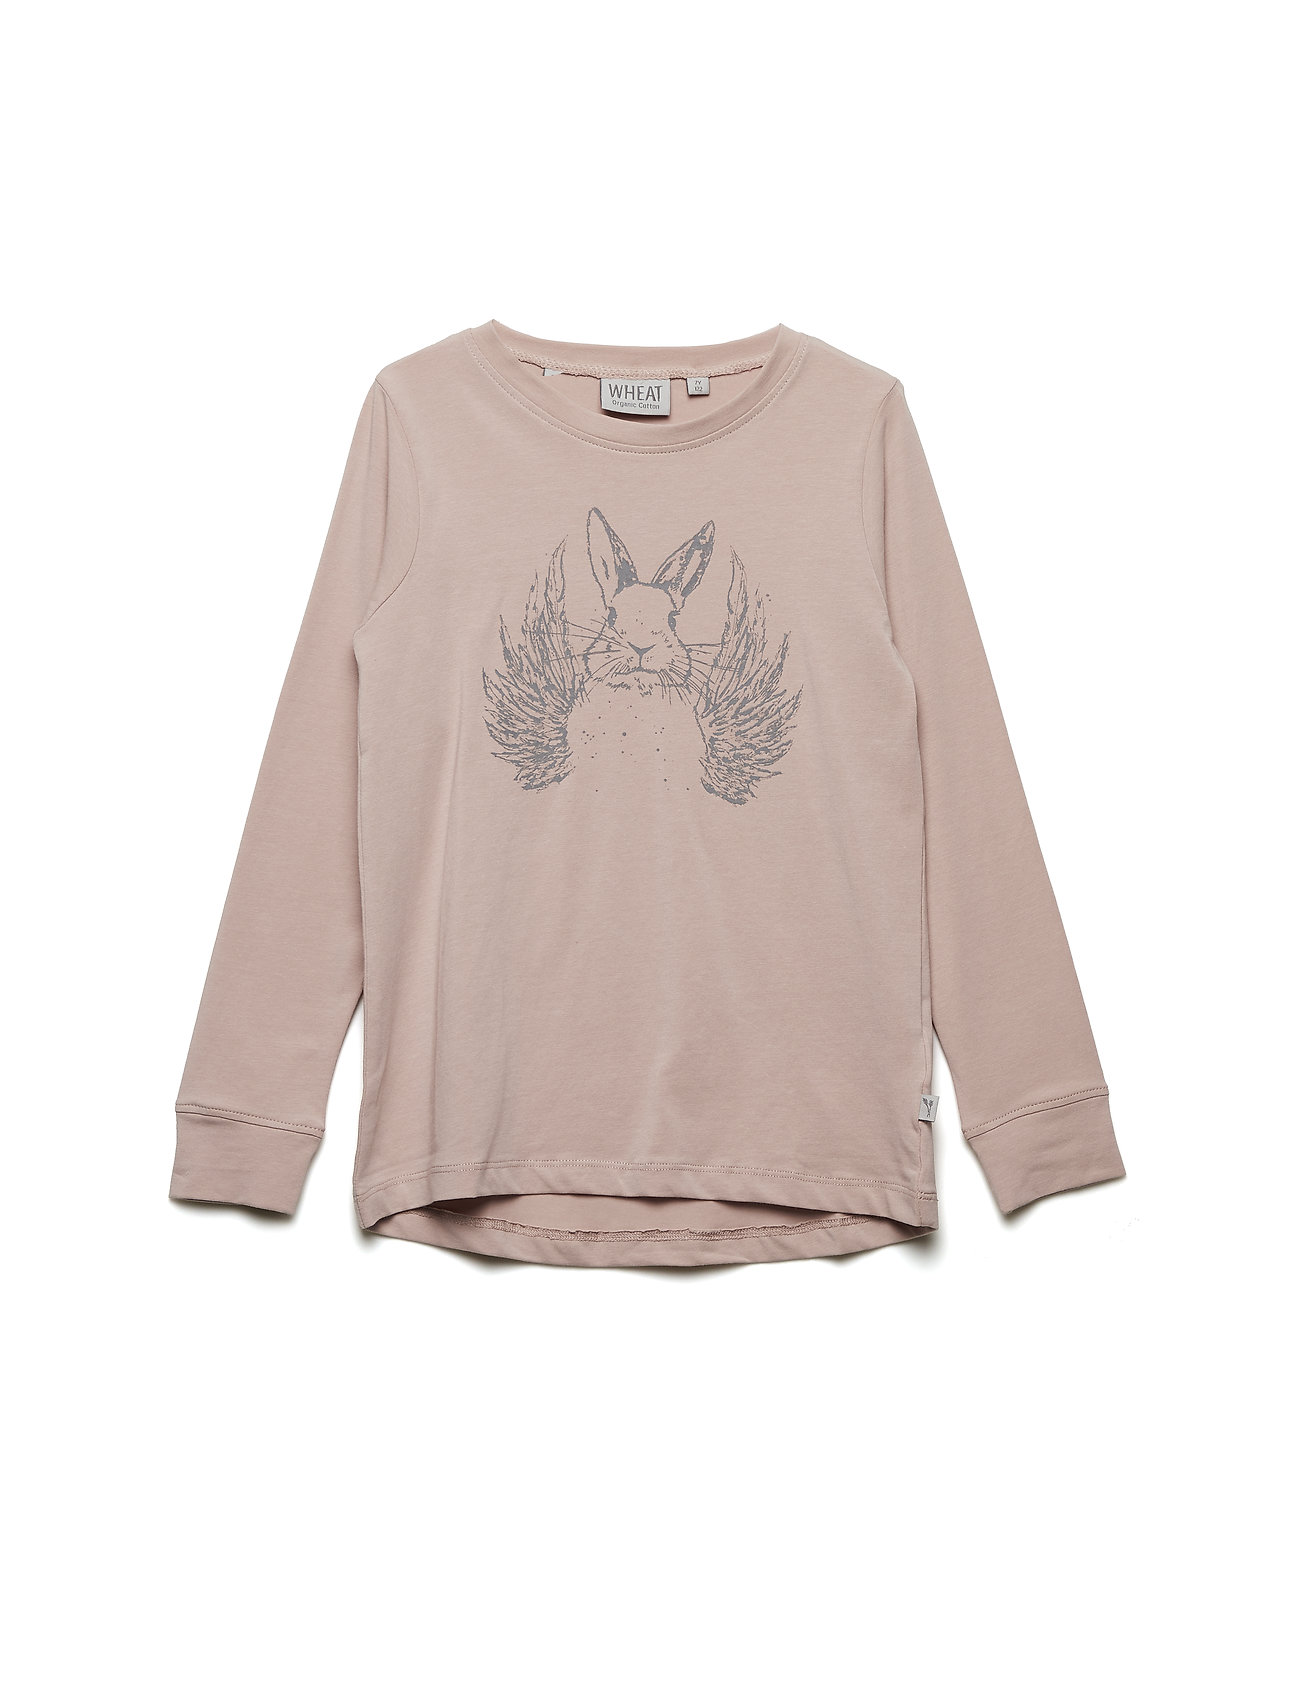 Wheat T-Shirt Flying Rabbit - ROSE POWDER